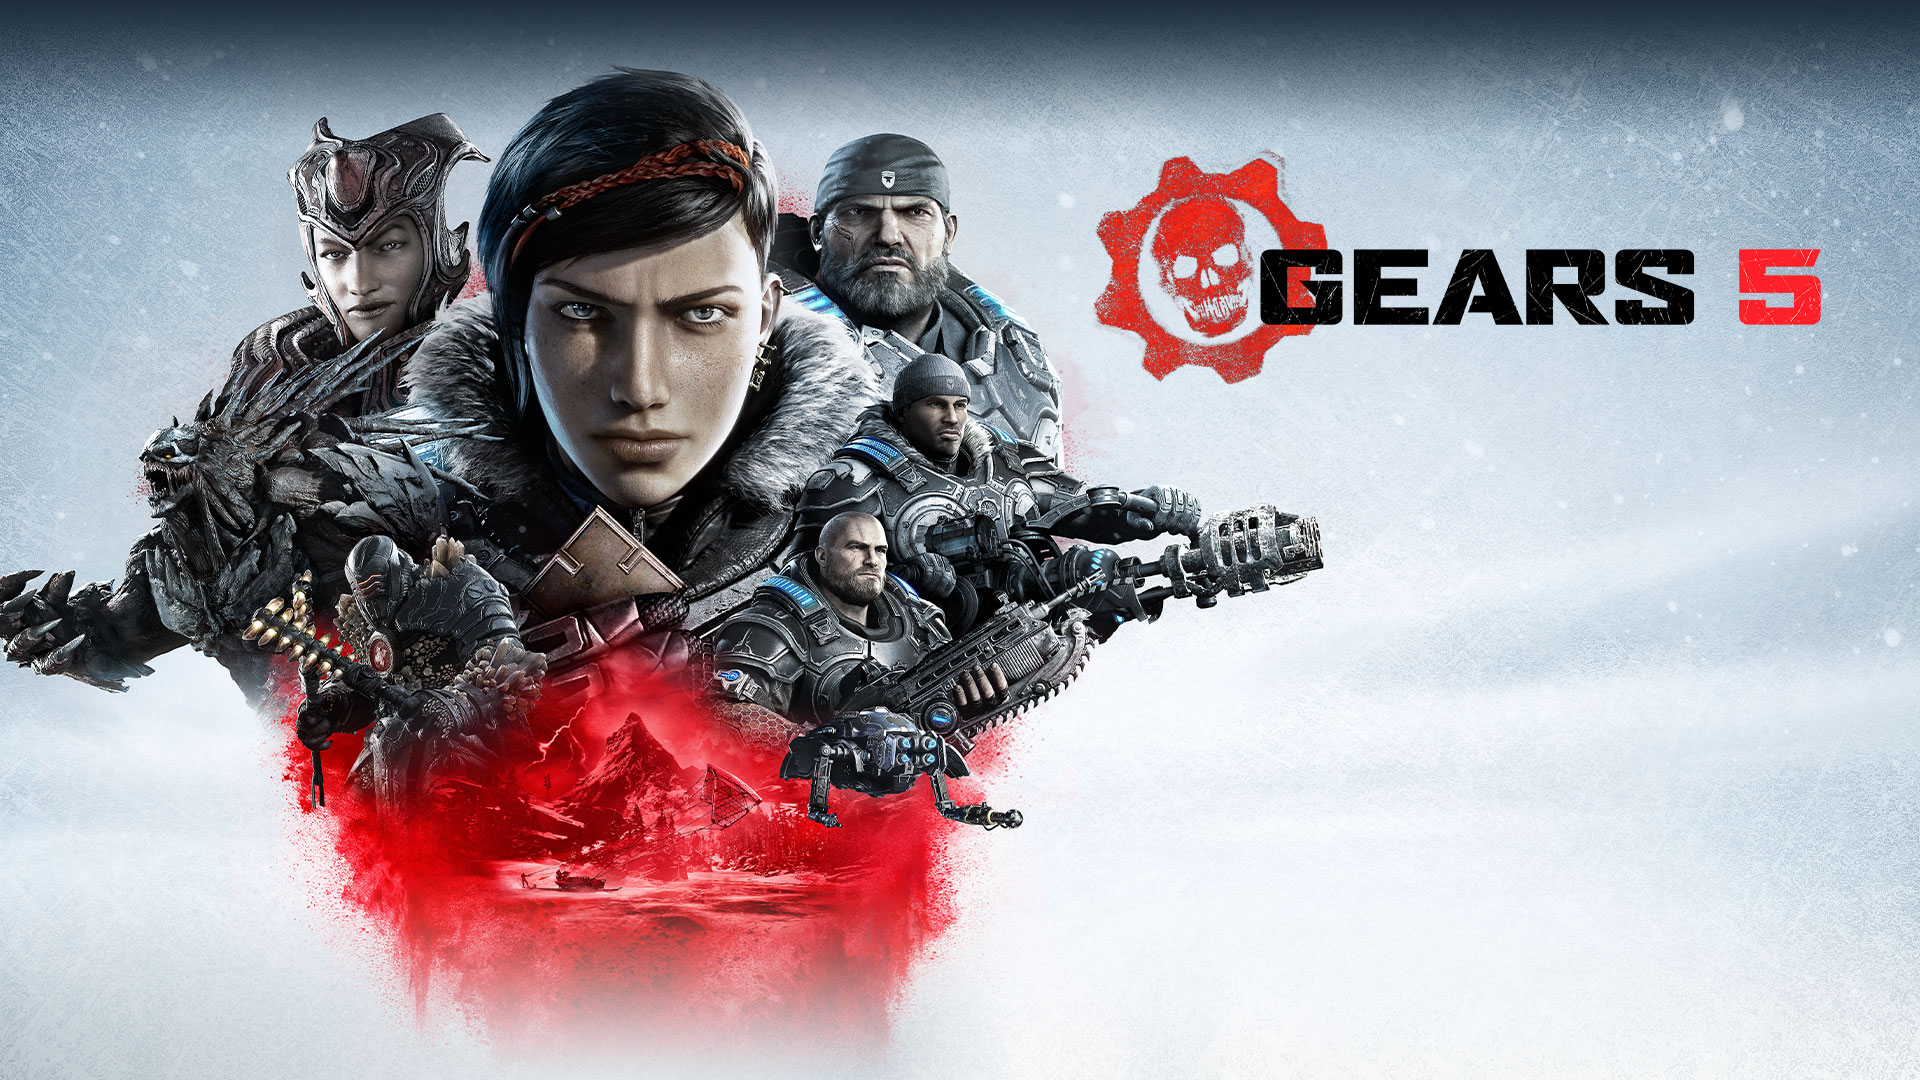 Gears 5 For Xbox One And Windows 10 Xbox